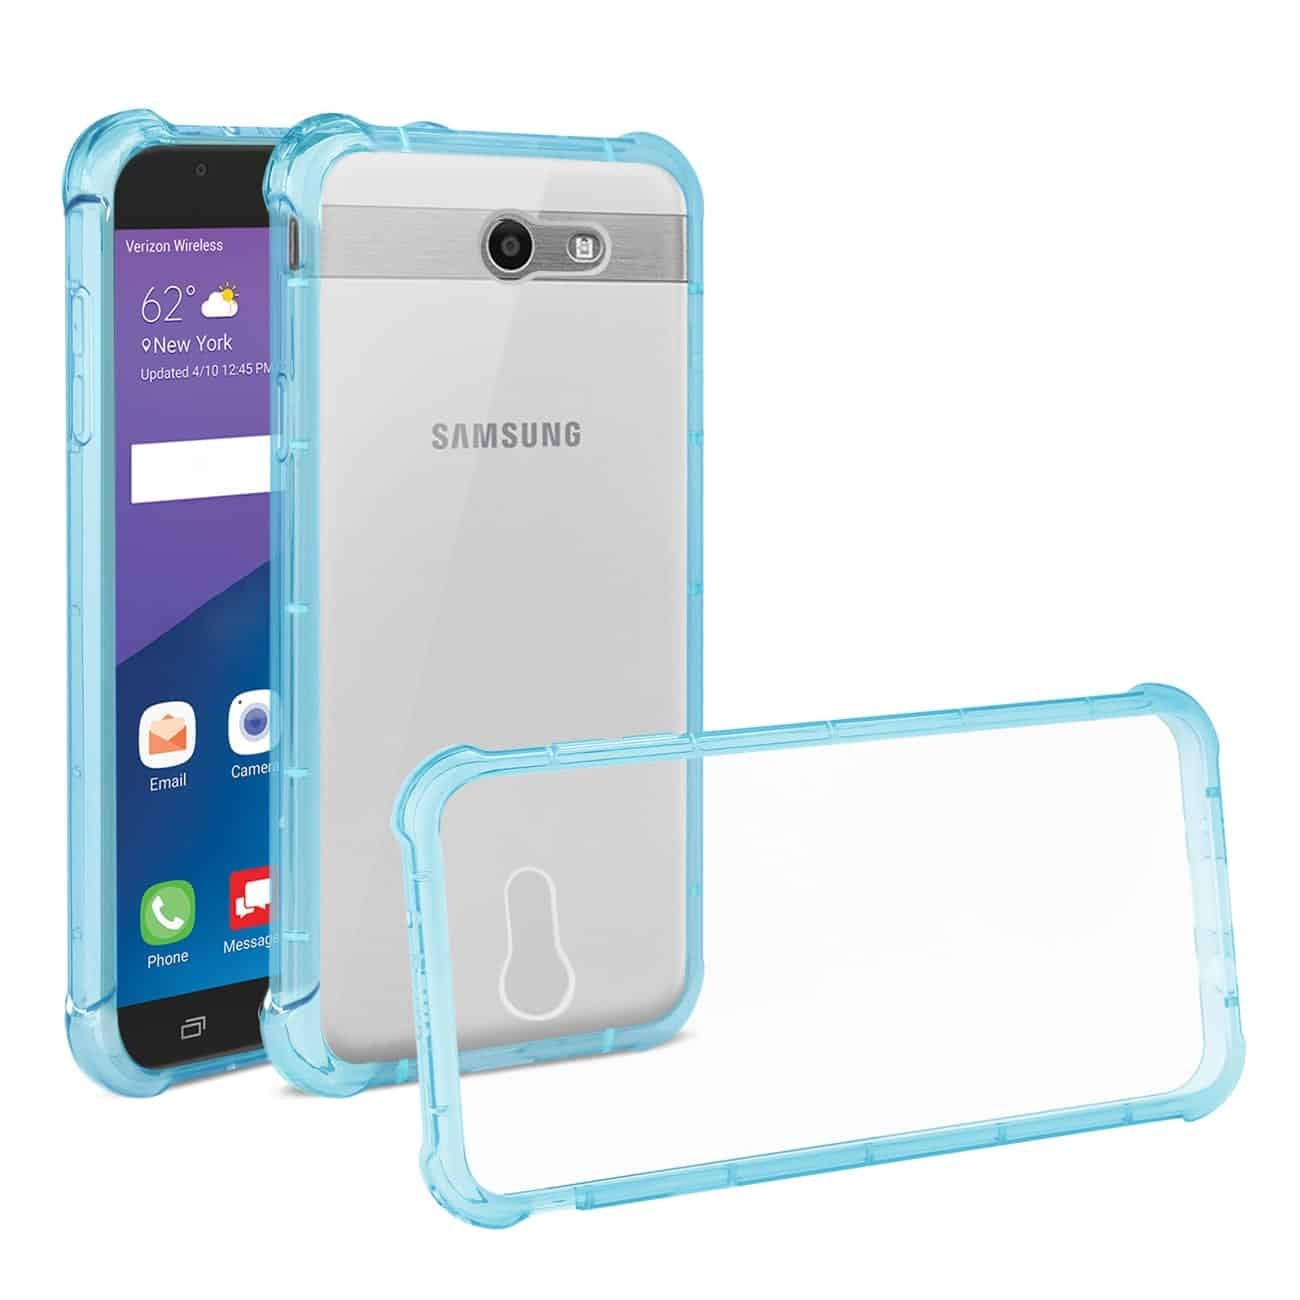 Samsung Galaxy J7 V (2017) Clear Bumper Case With Air Cushion Protection In Clear Navy